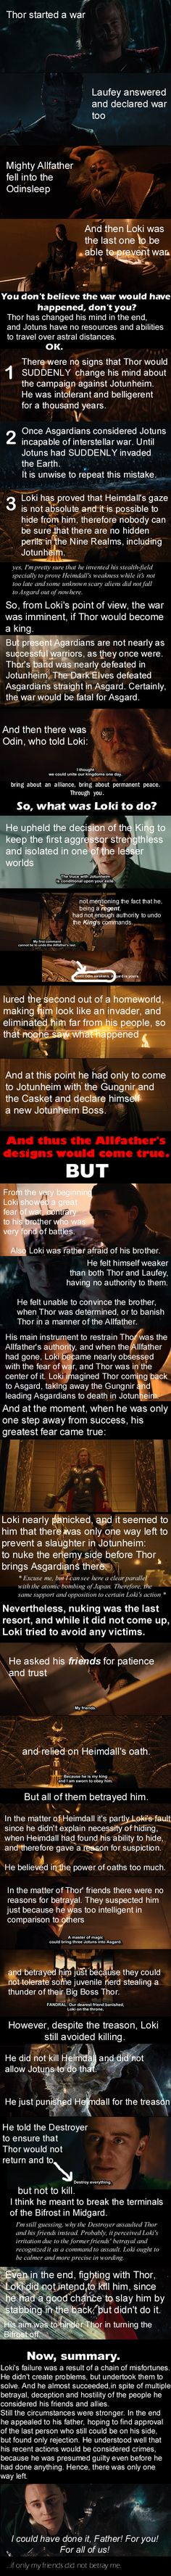 An alternate interpretation of Loki's motivations. Despite being a little too nicey nice, it actually tracks for the most part.